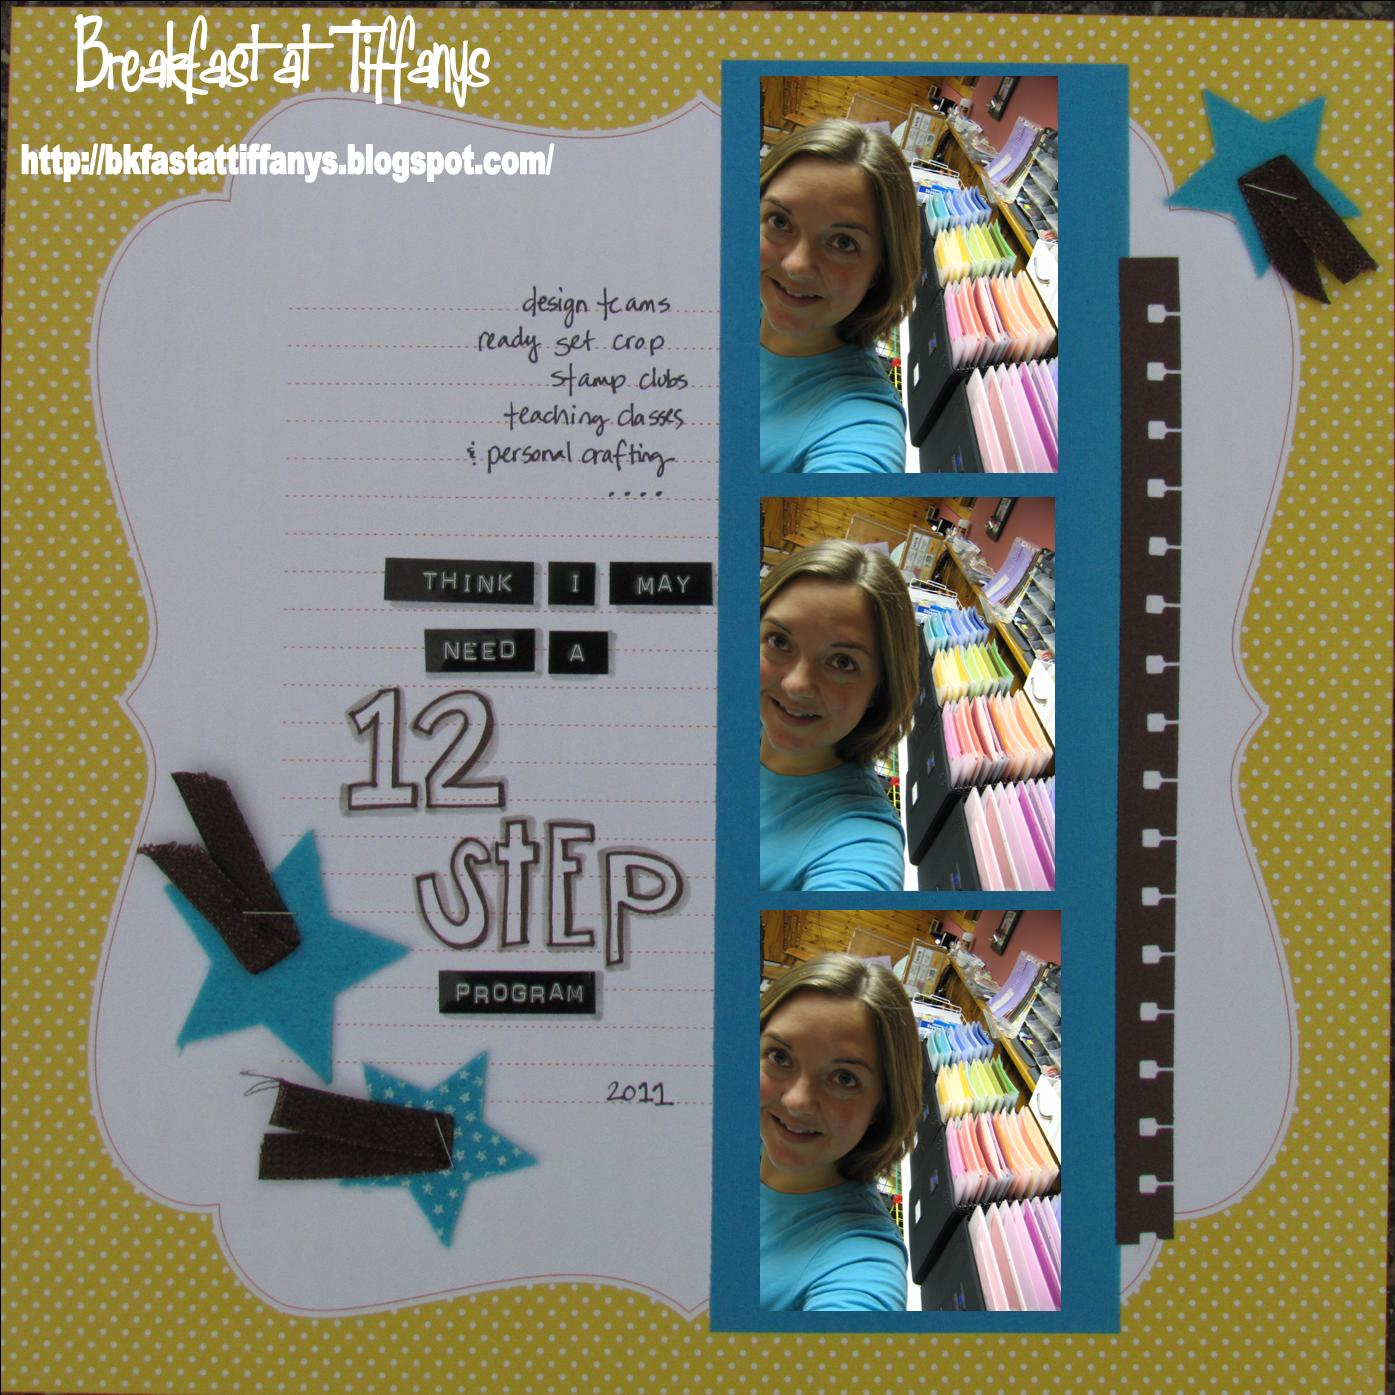 Breakfast @ Tiffany's!: Step by Step at Scrap It With a Song! - photo#22